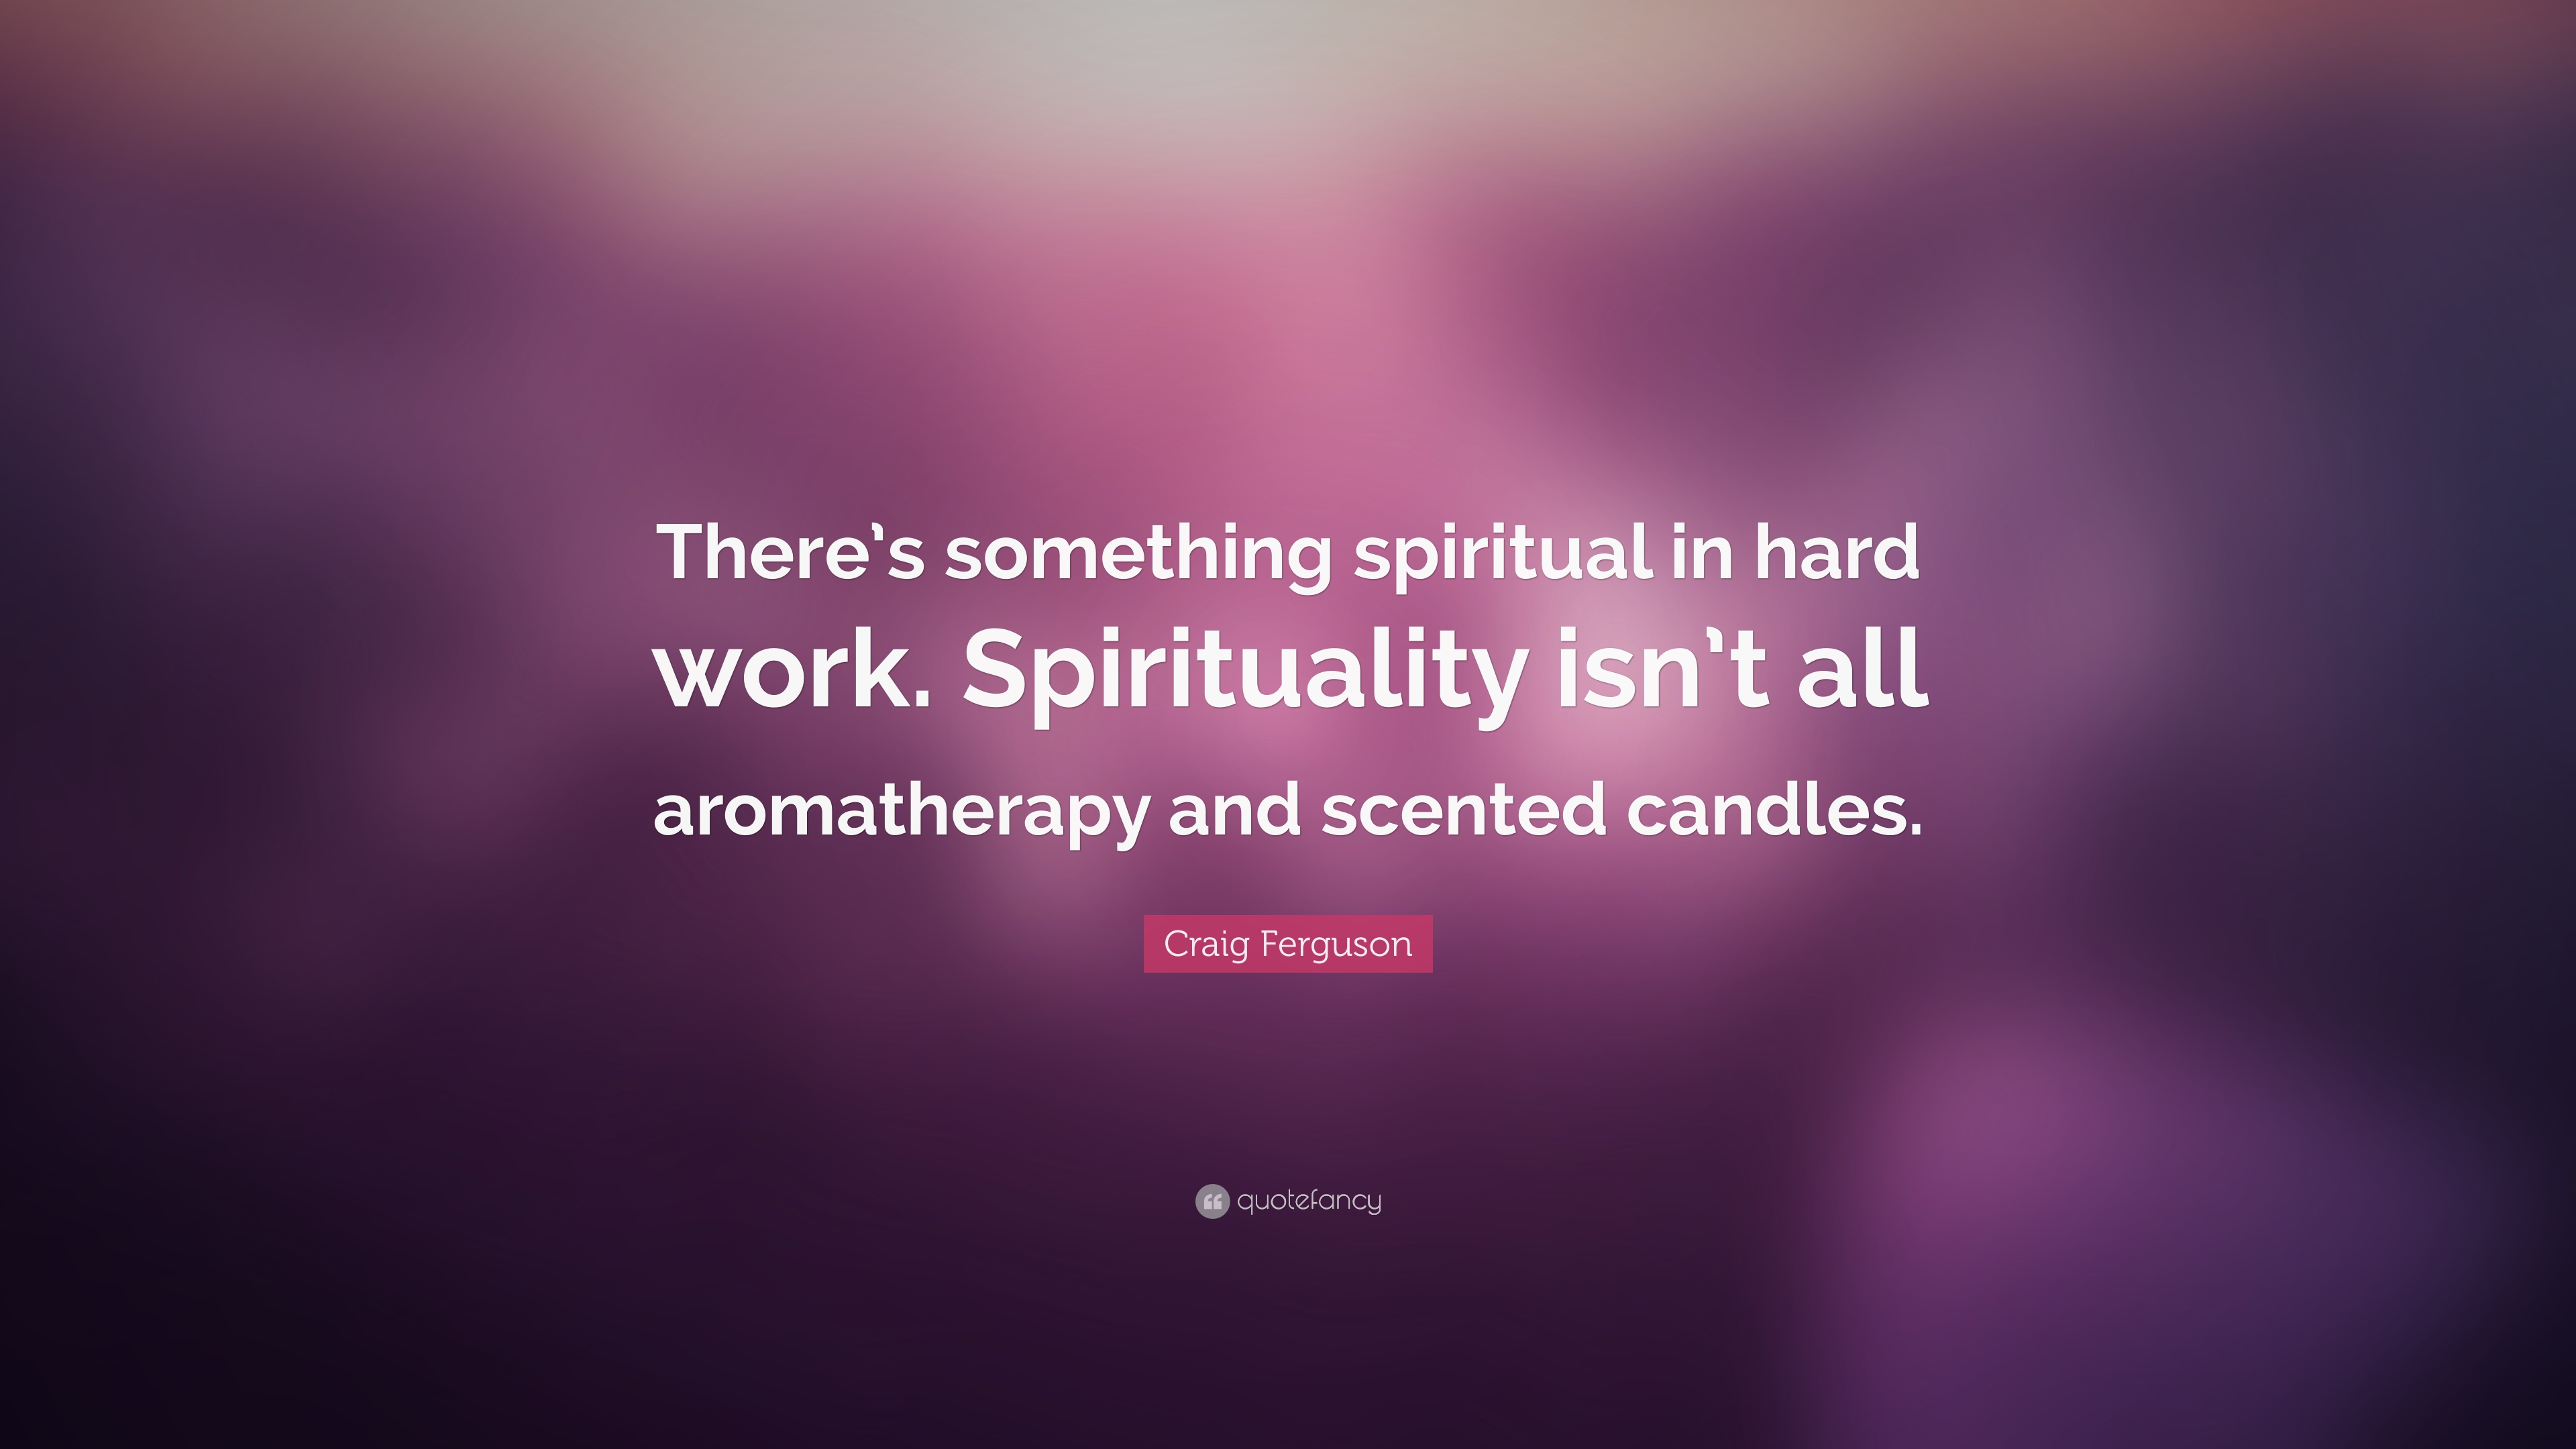 Craig Ferguson Quote There S Something Spiritual In Hard Work Spirituality Isn T All Aromatherapy And Scented Candles 6 Wallpapers Quotefancy